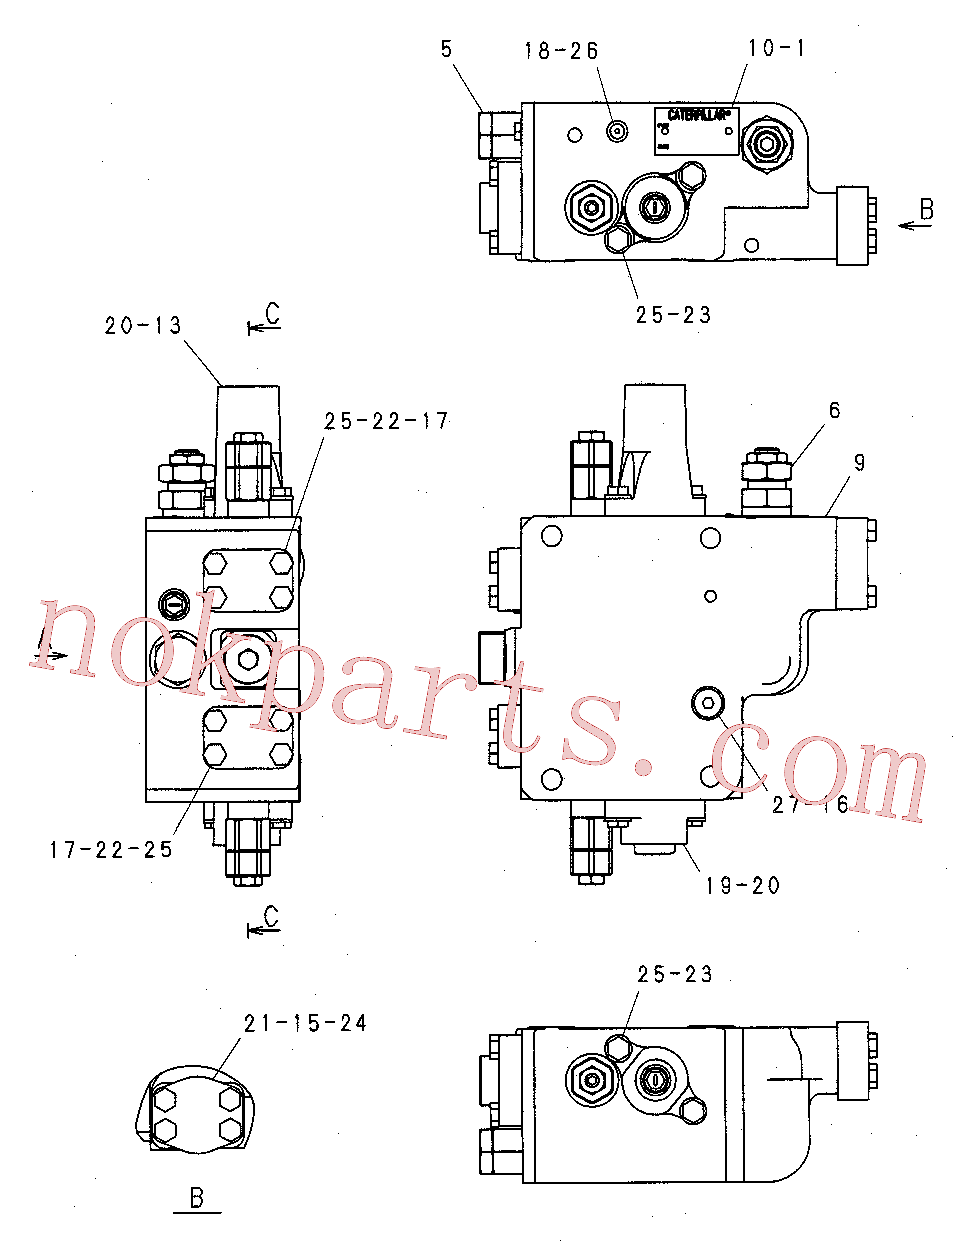 CAT 201-9352 for 319C Excavator(EXC) hydraulic system 244-8401 Assembly